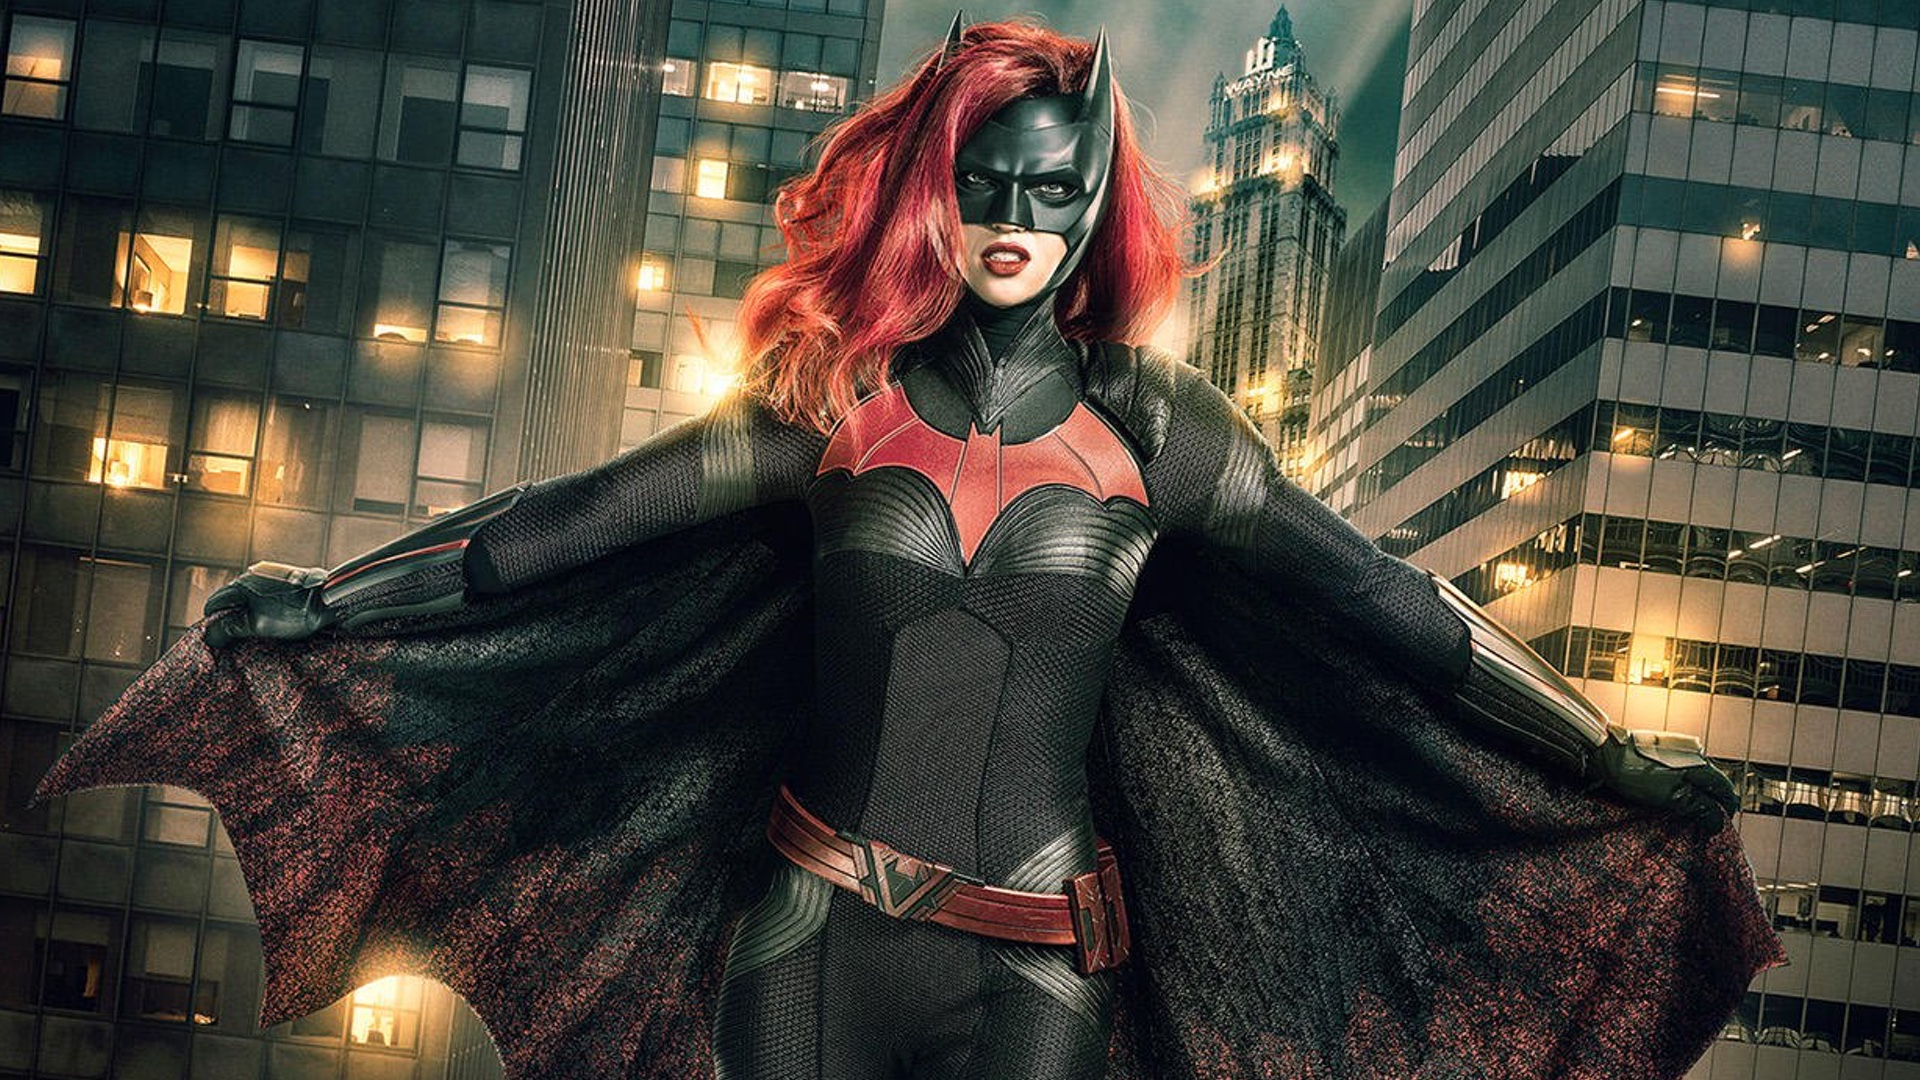 heres-our-first-look-at-ruby-rose-as-batwoman-social.jpg